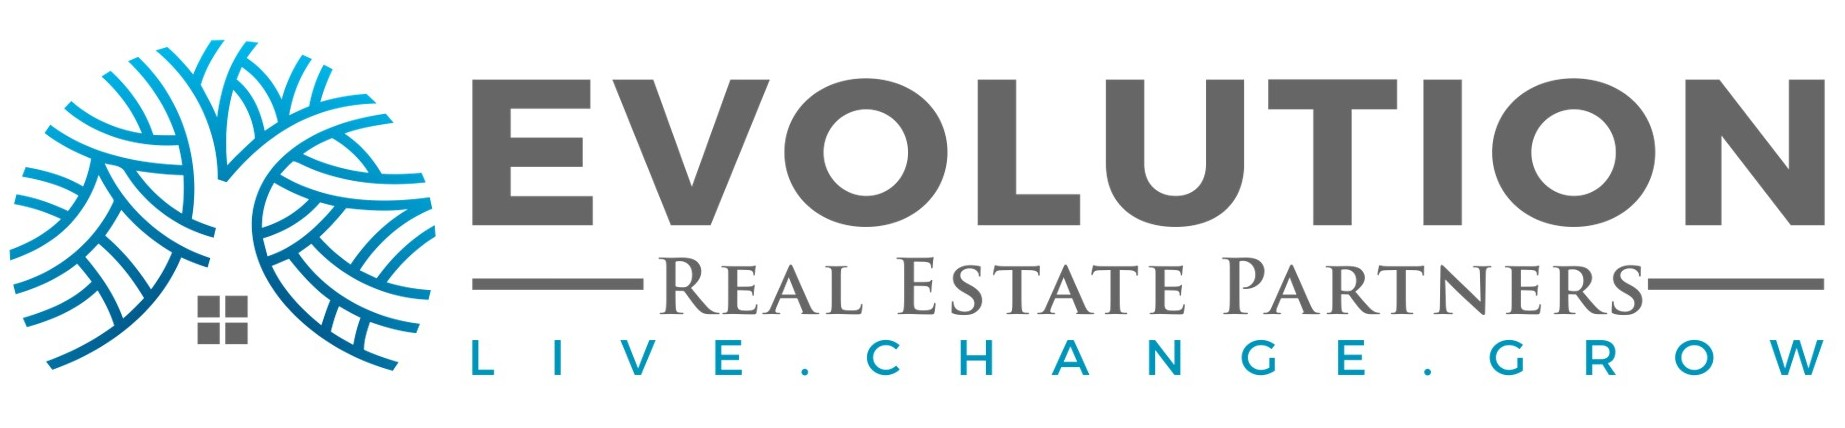 Evolution Real Estate - Keller Williams Realty WM logo